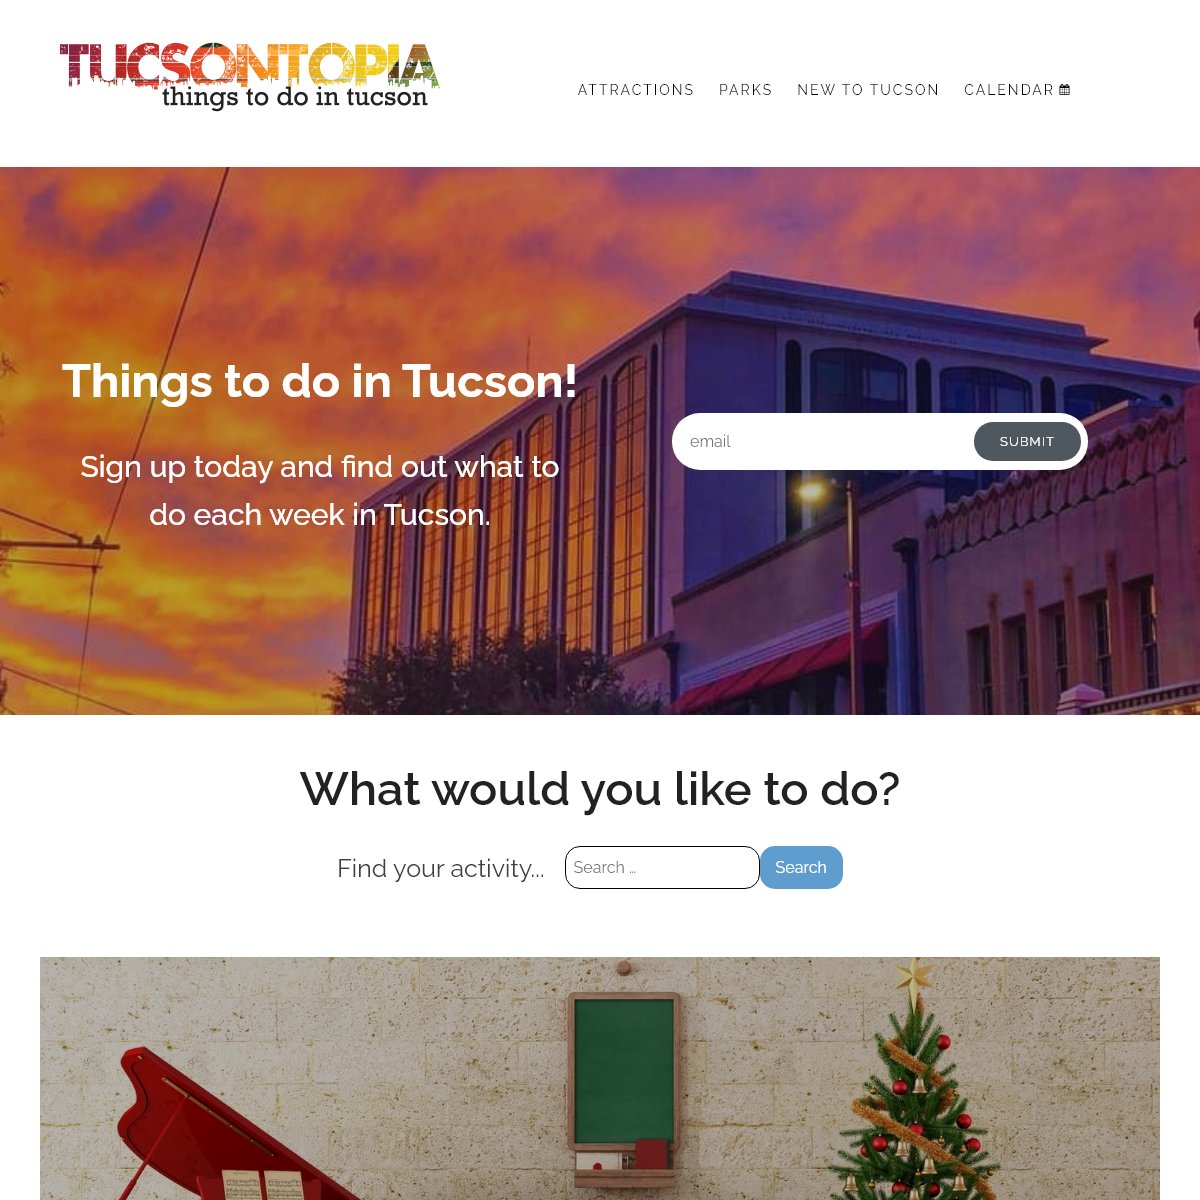 TucsonTopia - Things to do for families in Tucson